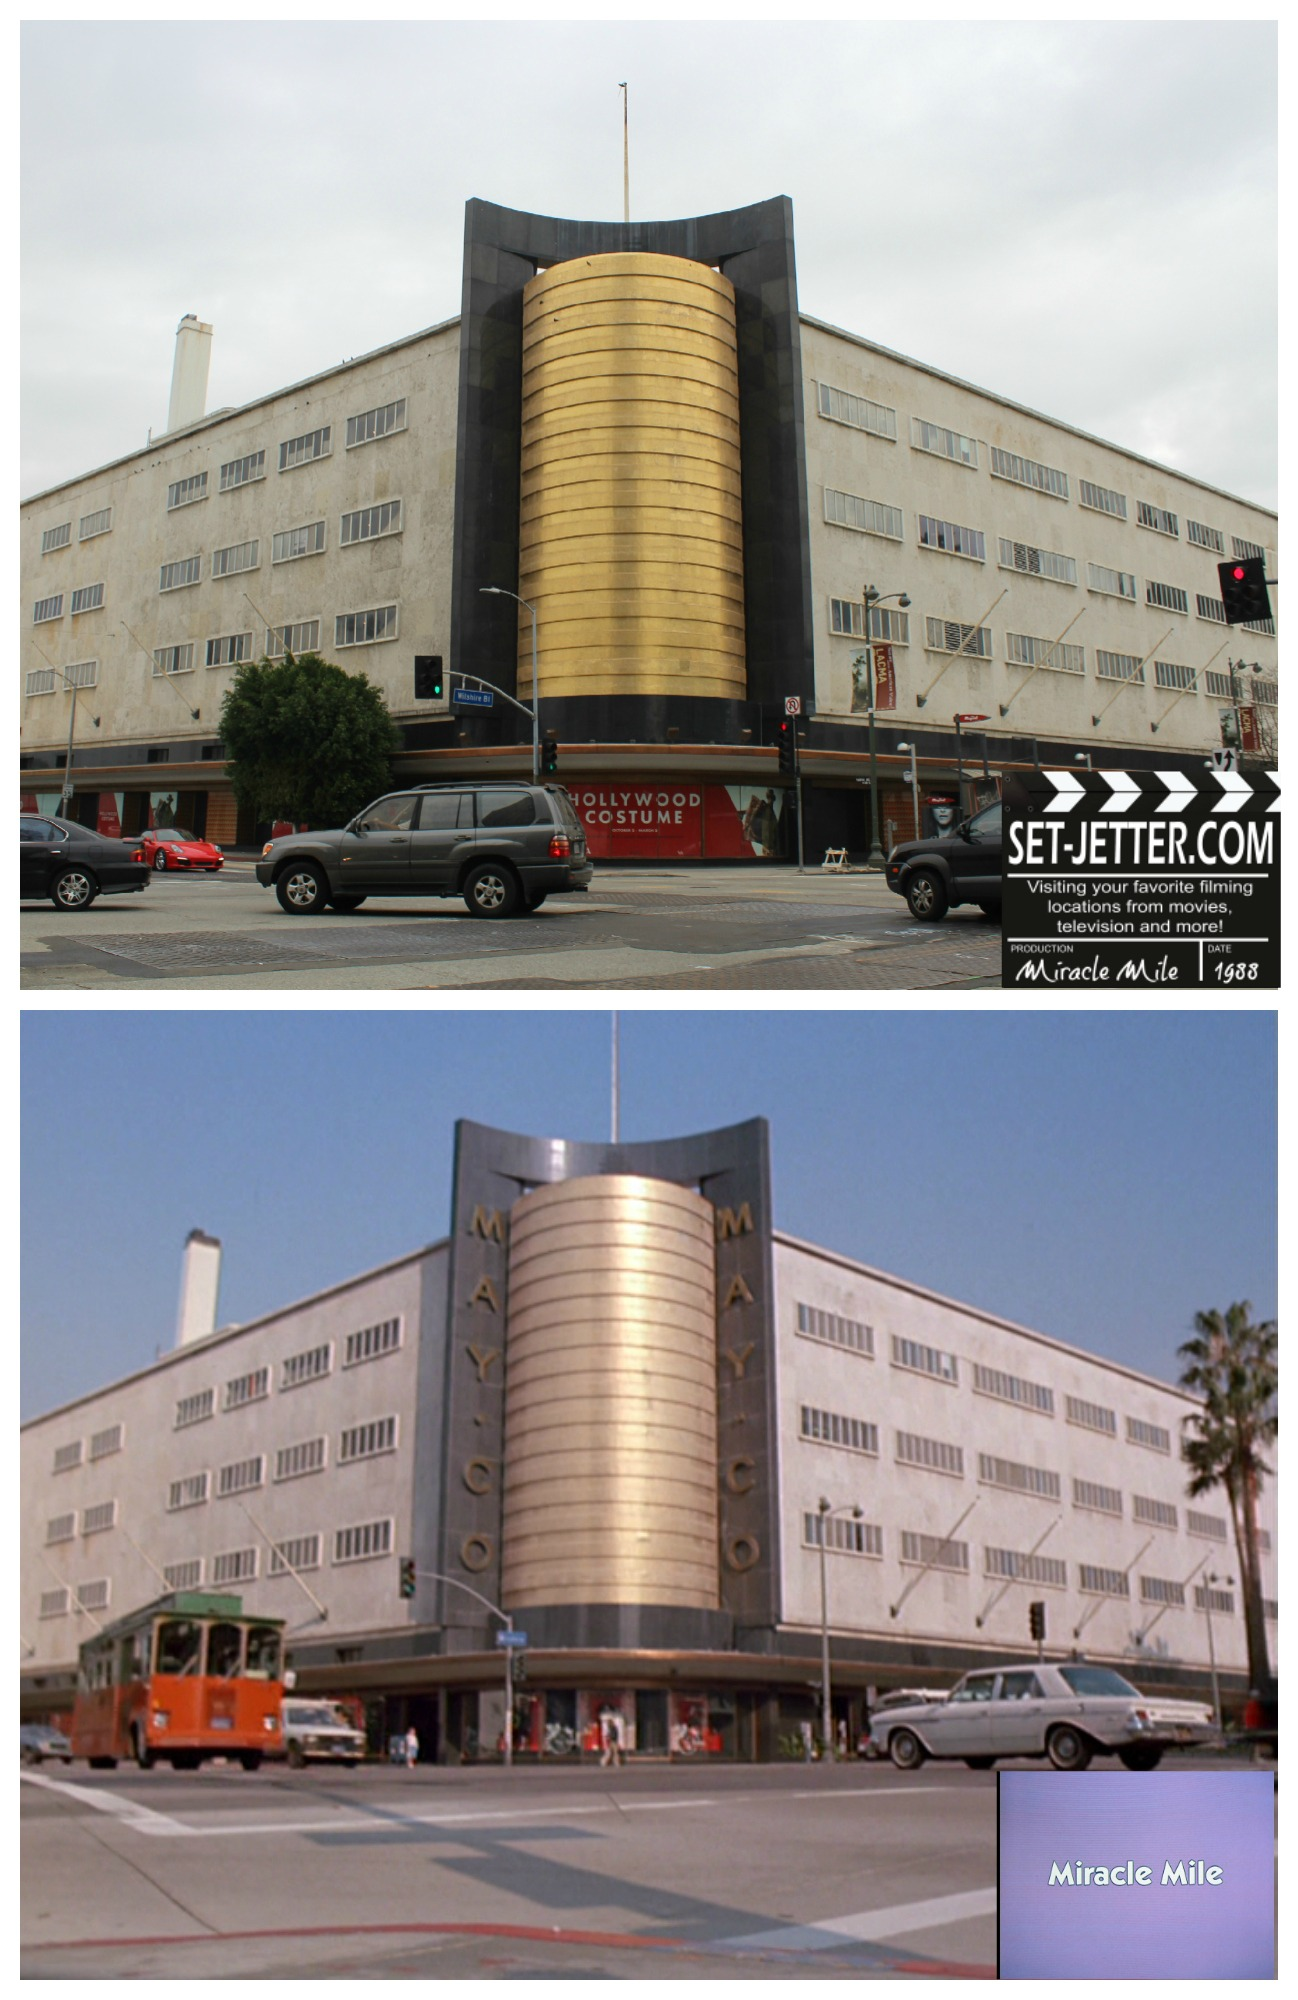 Miracle Mile comparison 01.jpg